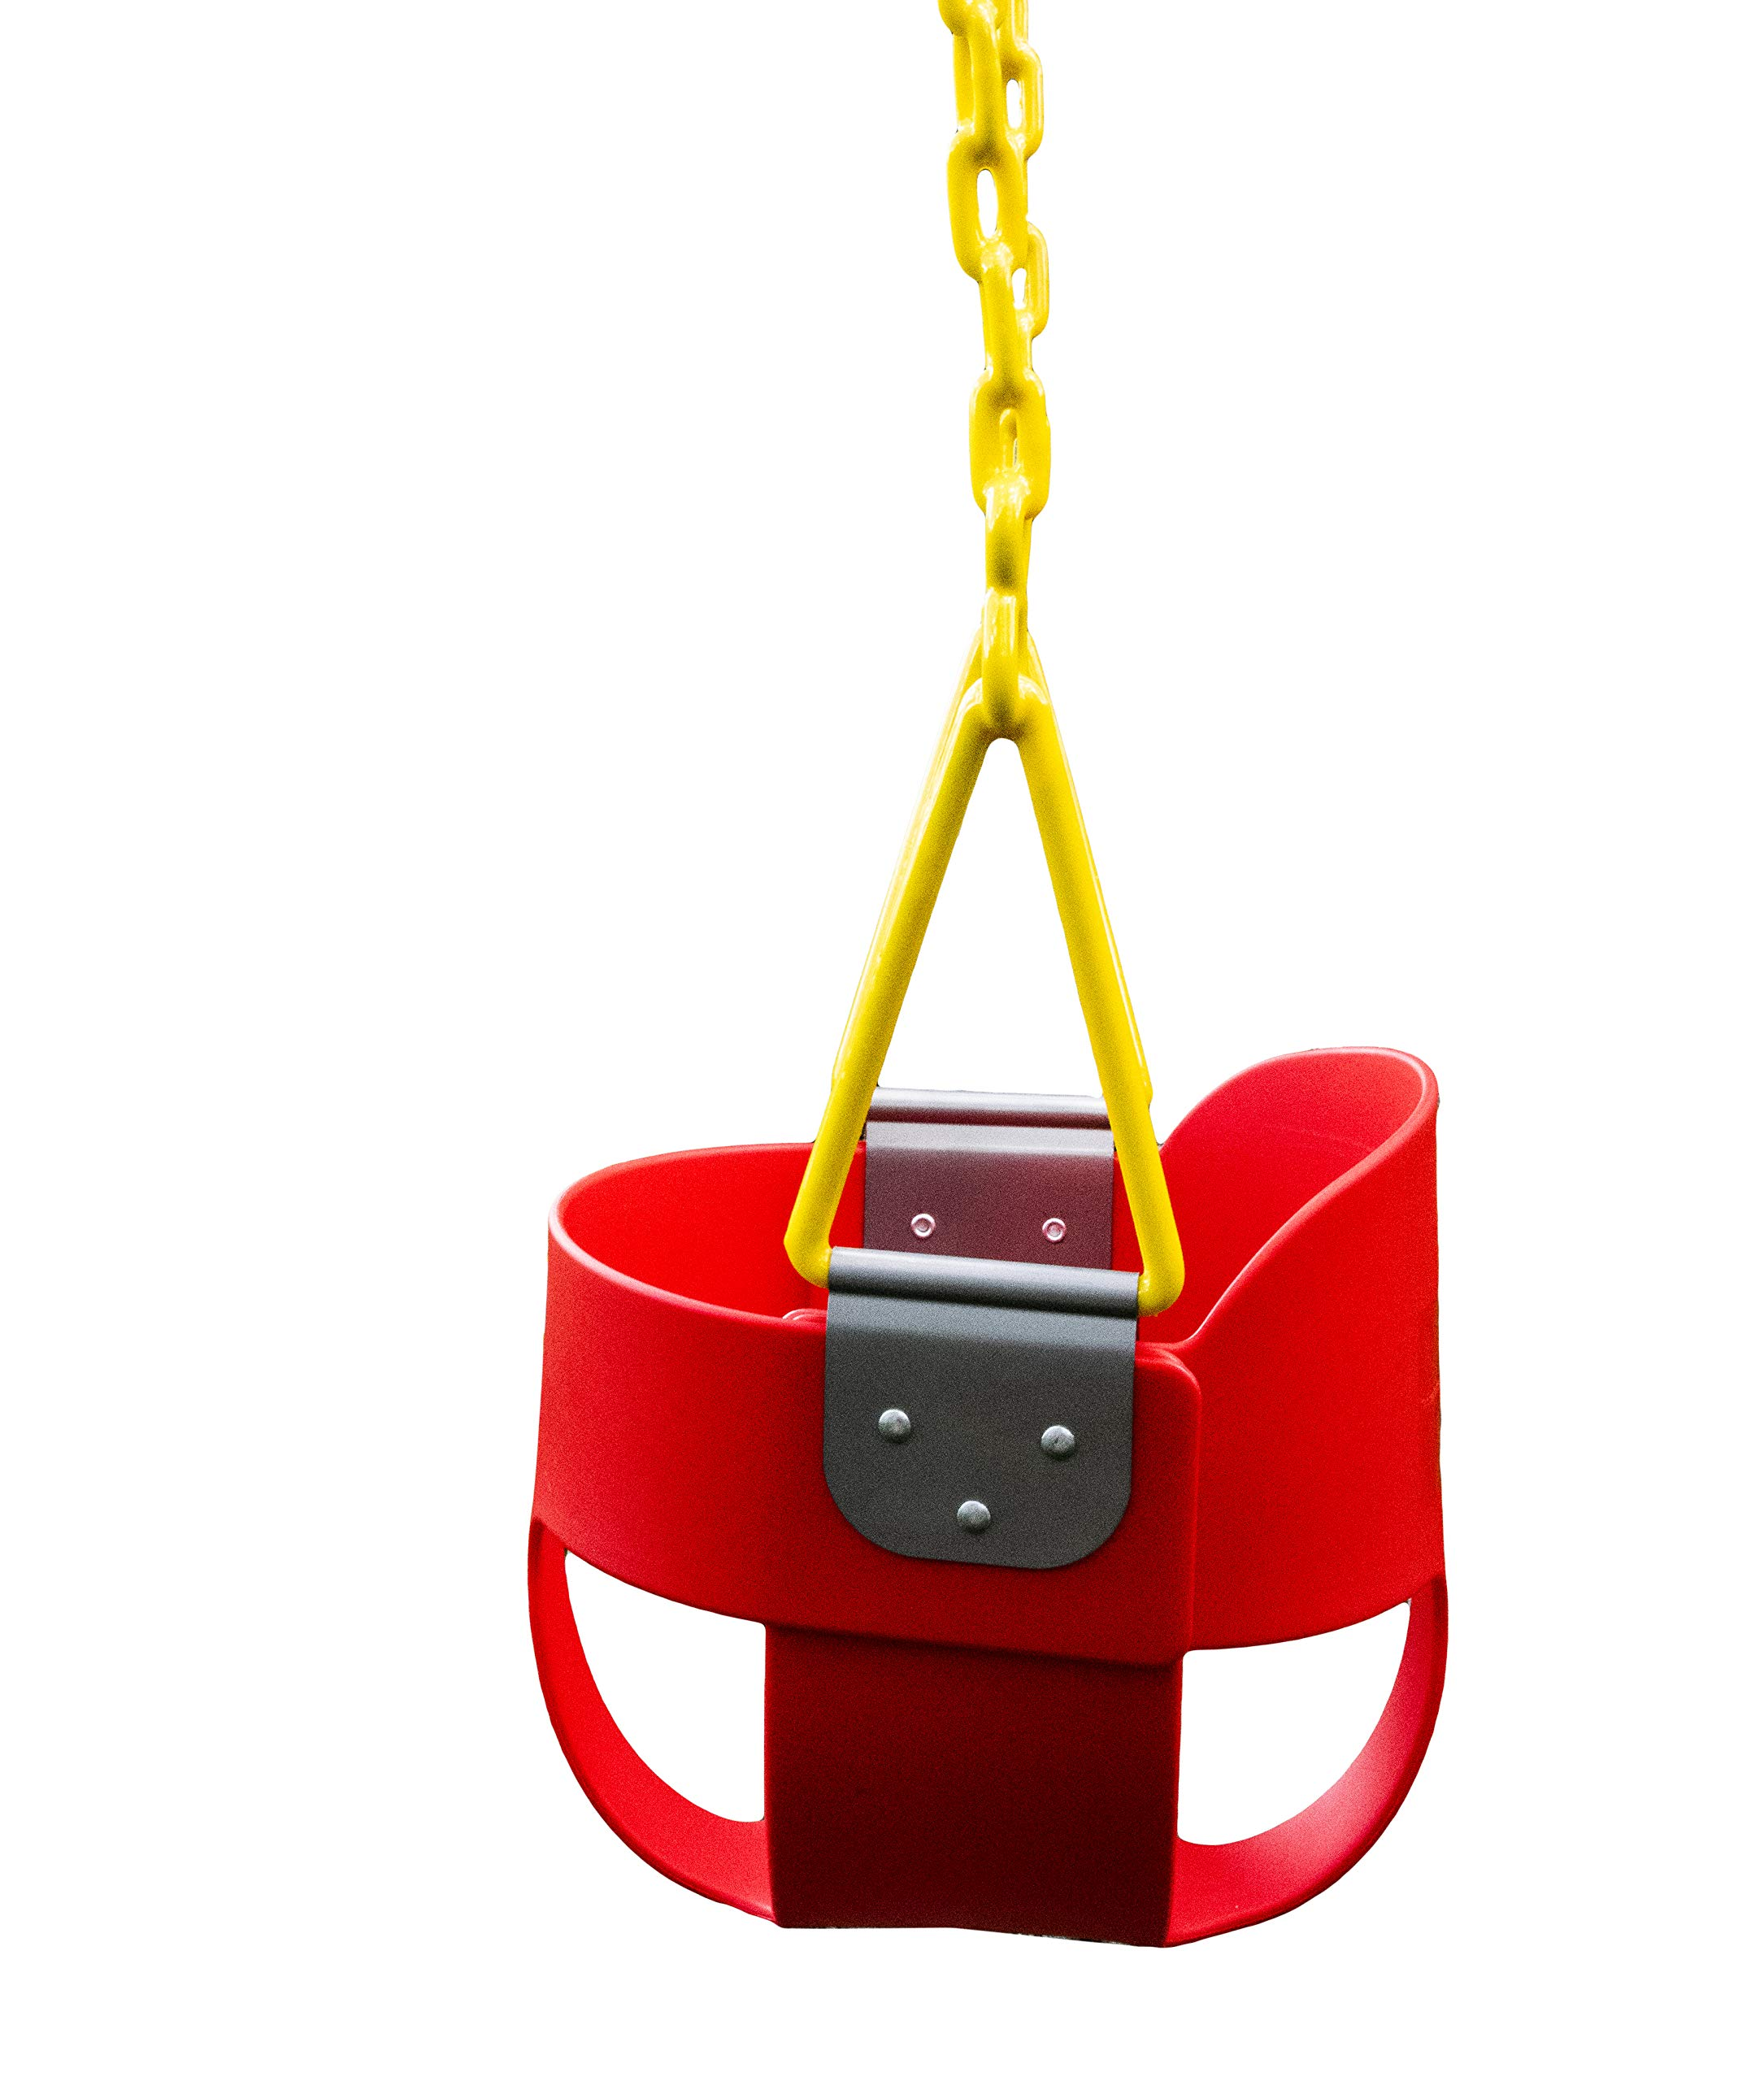 Squirrel Products High Back Full Bucket Toddler Swing with Exclusive Chain & Triangle Dip Pinch Protection Technology - Red by Squirrel Products